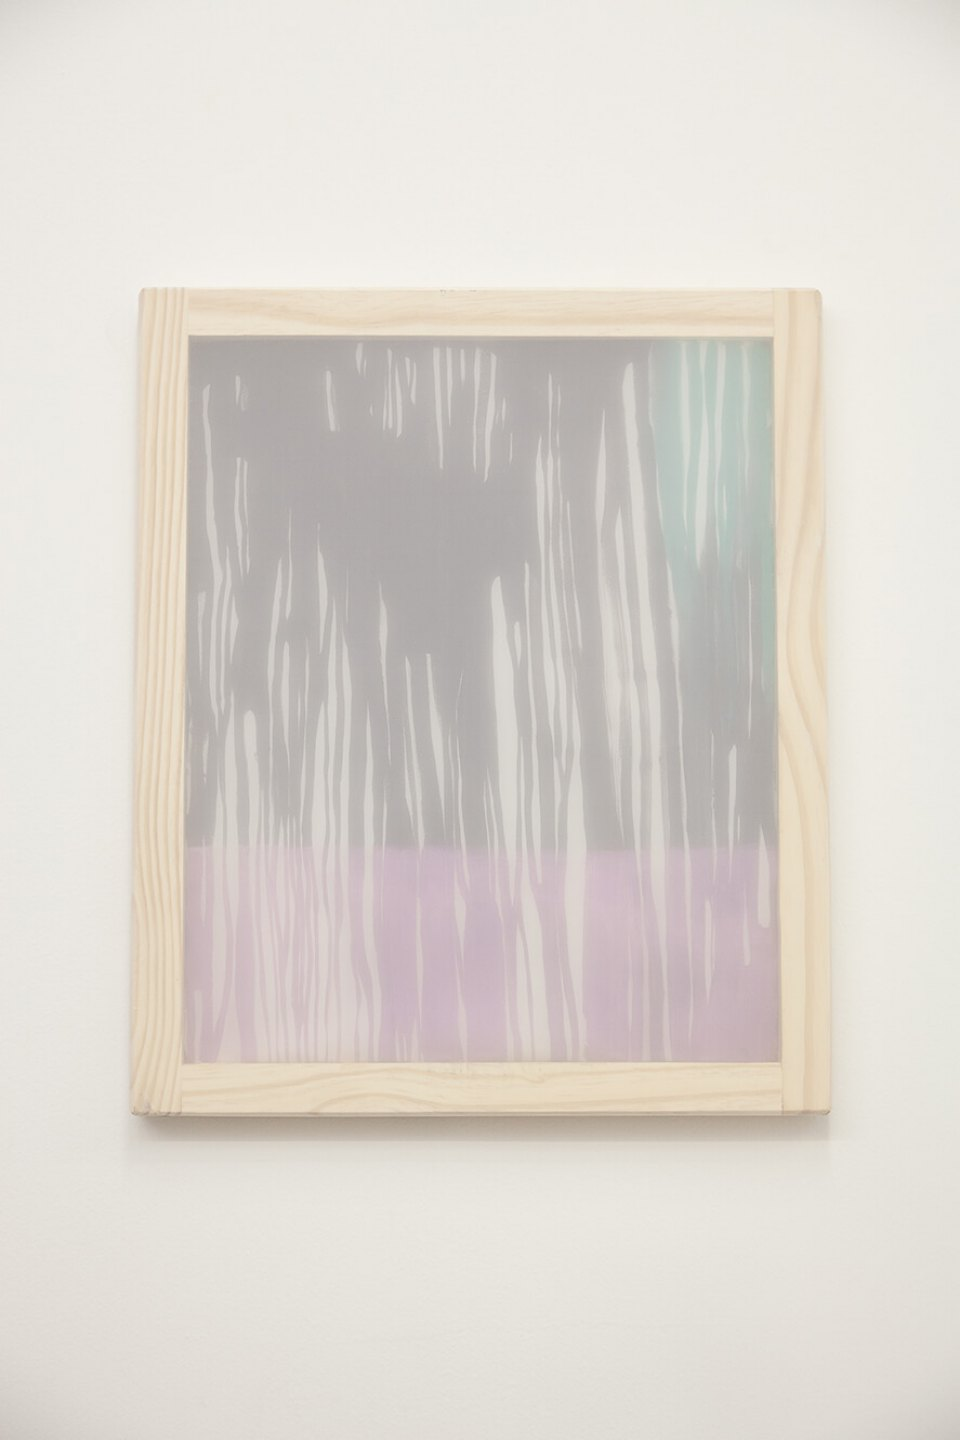 Marina Perez Simão<em>, Untitled</em>, 2012, acrylic and pigment iridescent on polyester and overlay canvas, 60 × 50 inches - Mendes Wood DM